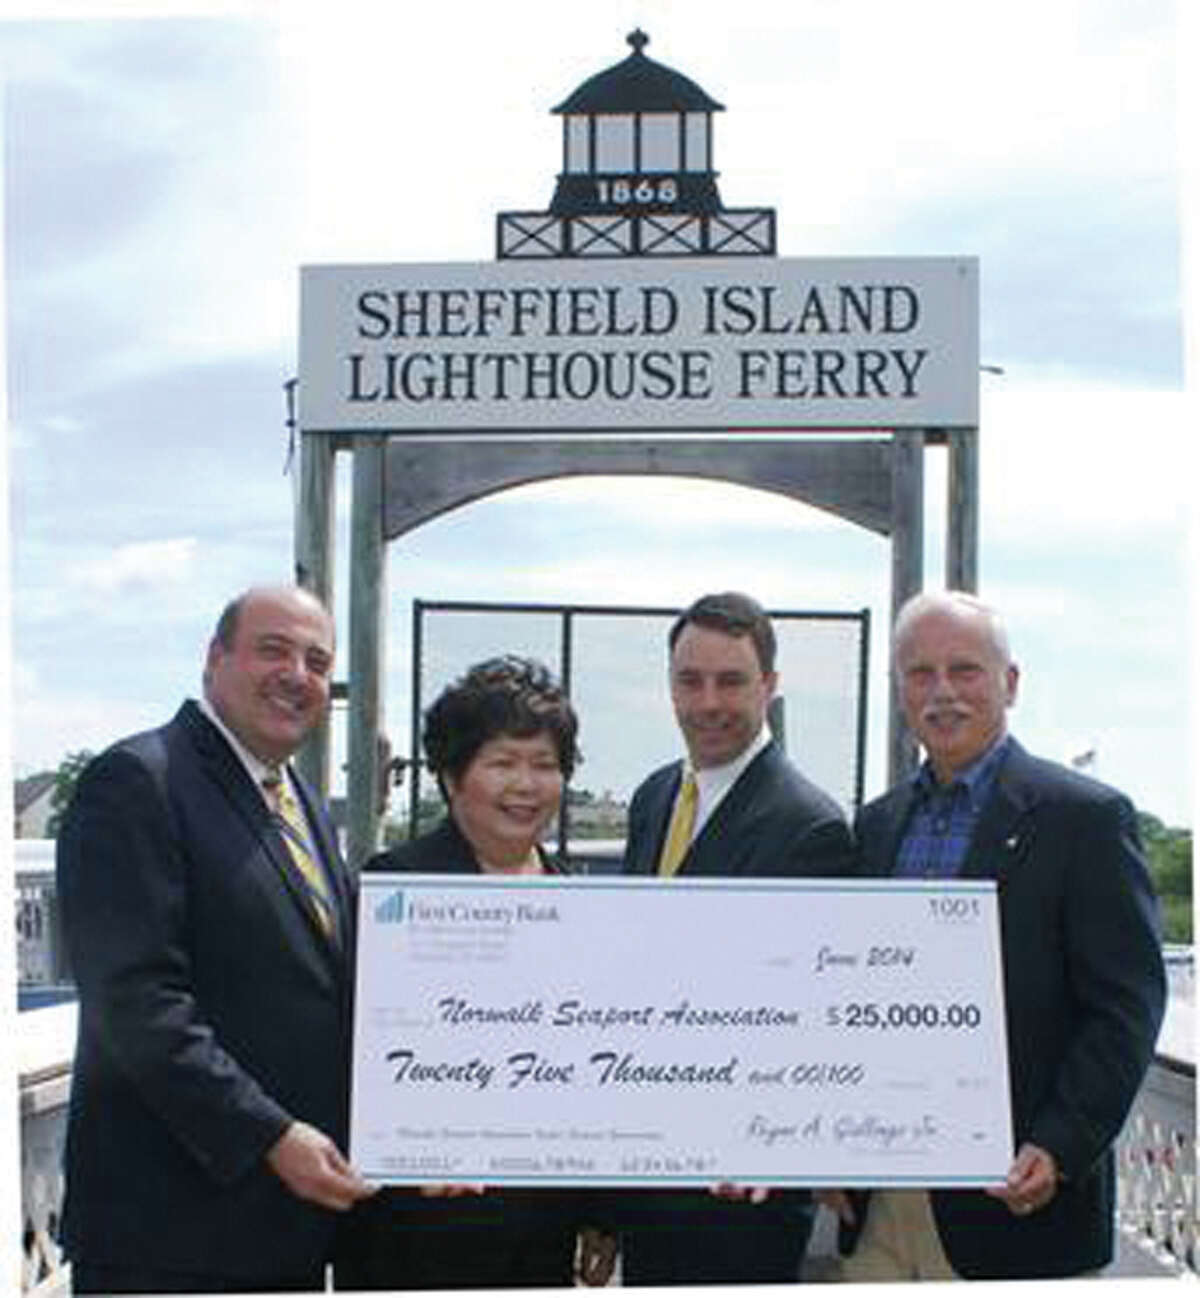 From left to right: Robert Granata, president and COO of First County Bank, Irene Dixon, president of the board of trustees of the Norwalk Seaport Association, Inc., Mike Reilly, Oyster Festival chairman/trustee and Rey Giallongo, chairman and CEO of First County Bank. As the presenting sponsor, First County Bank presents its sponsorship check to the Norwalk Seaport Association for the 2014 Oyster Festival.